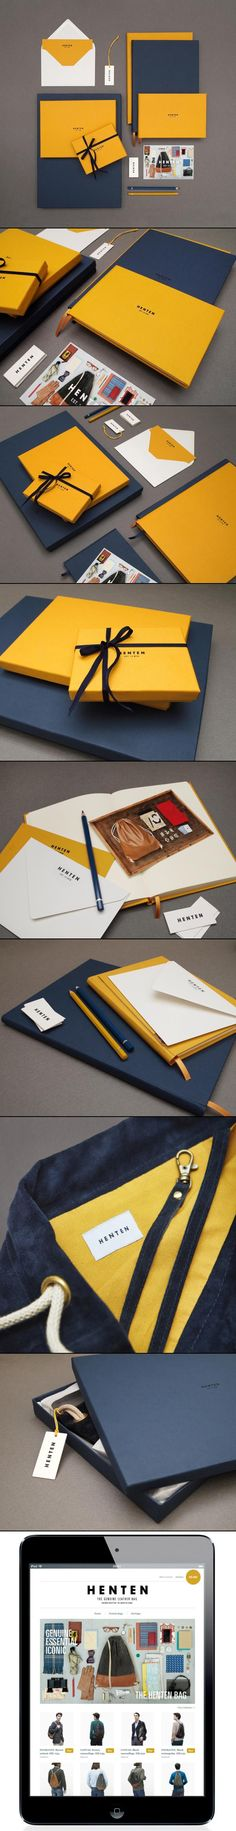 HENTEN. Corporate Identity.